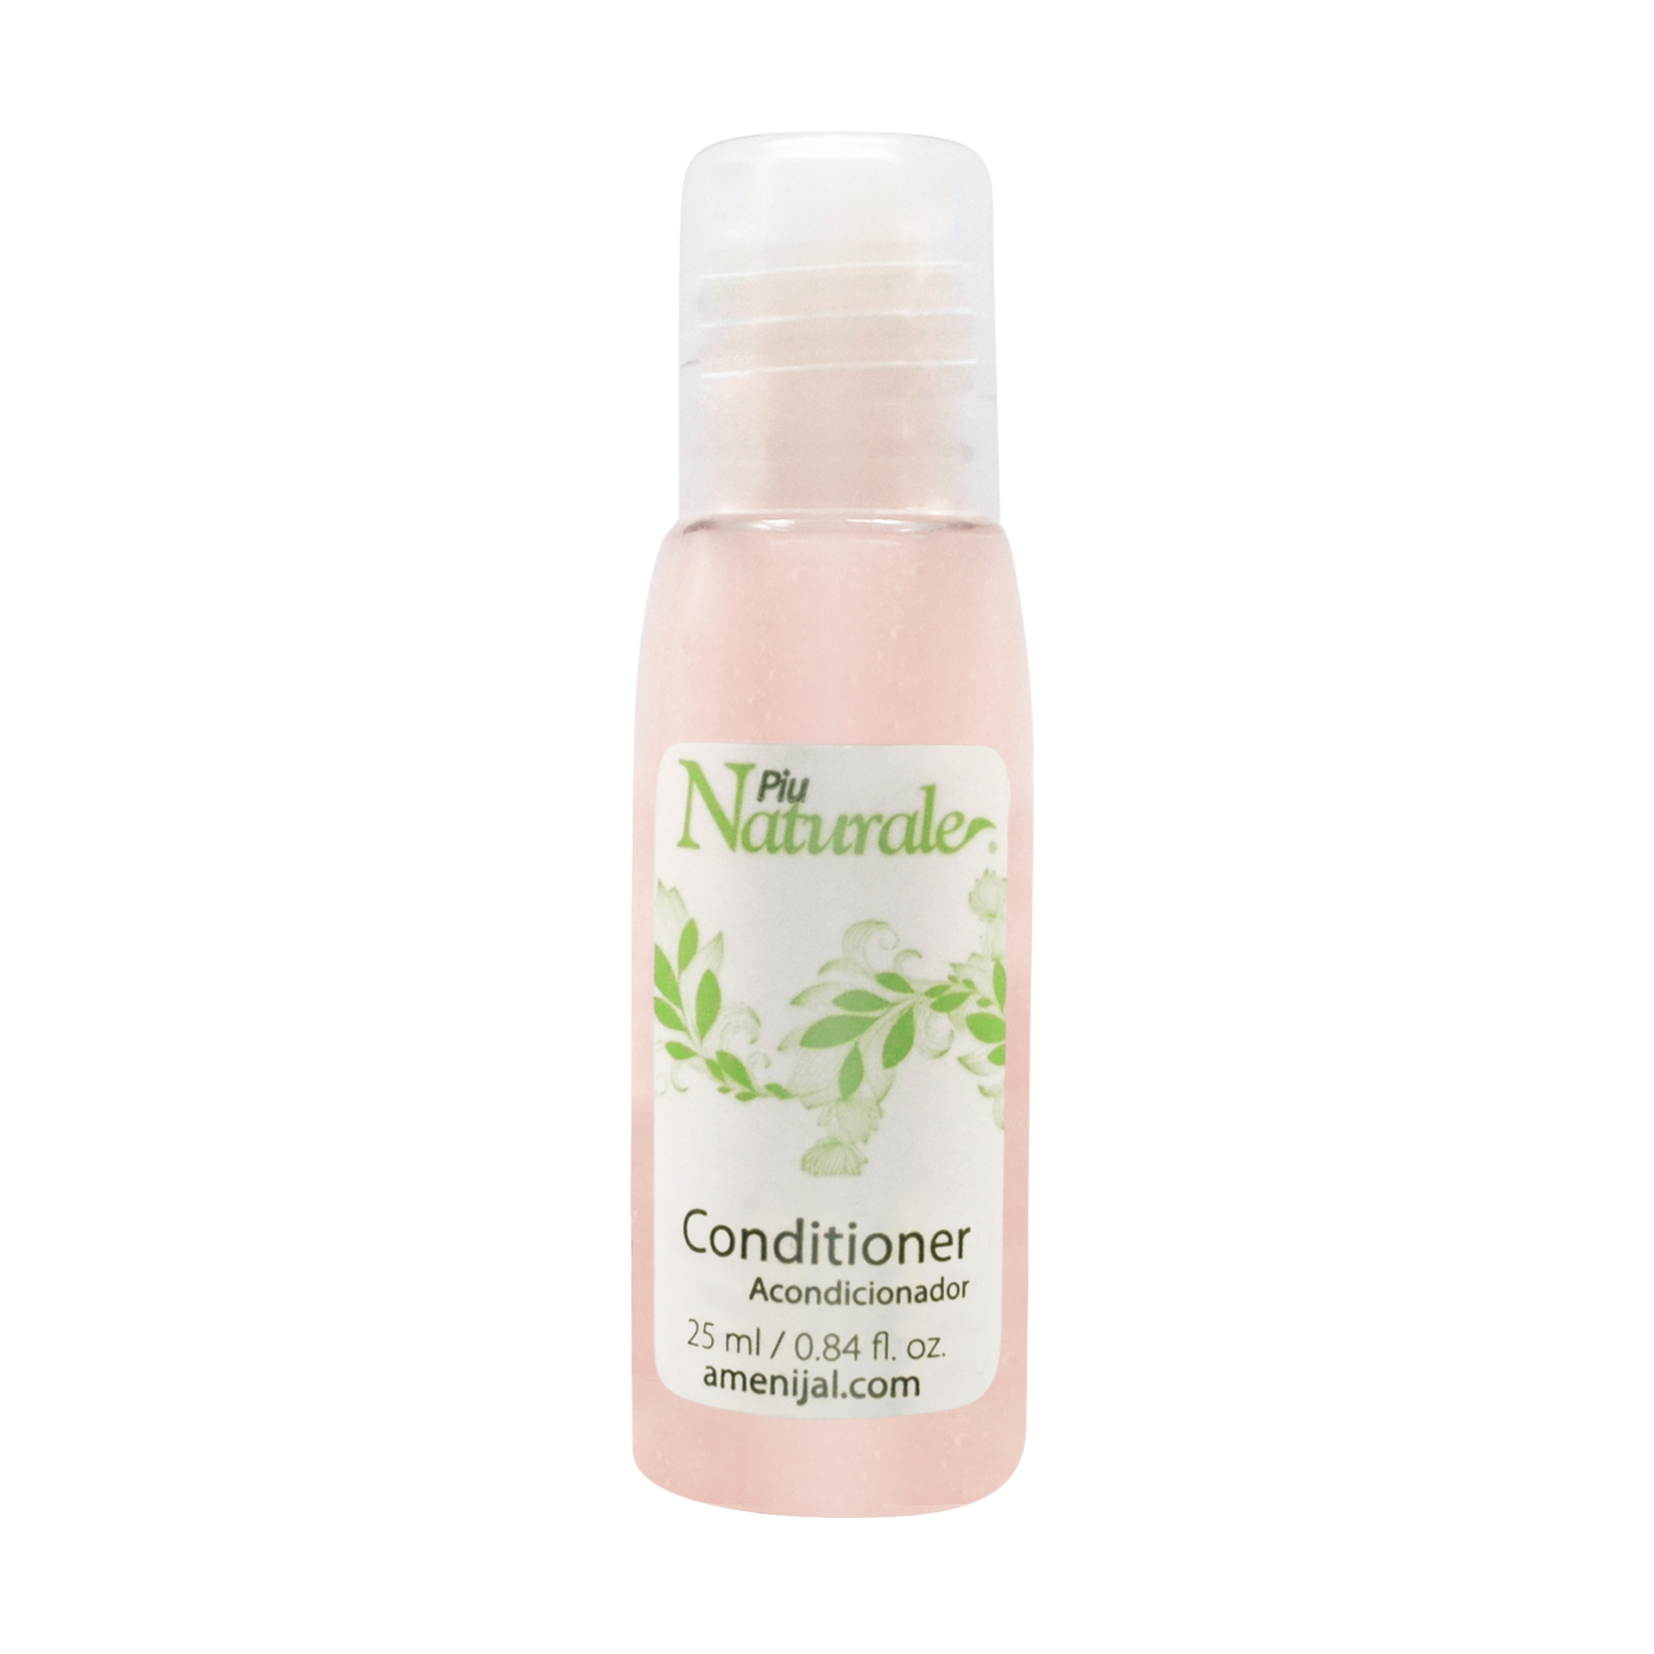 Acondicionador 25 ml Piu Naturale